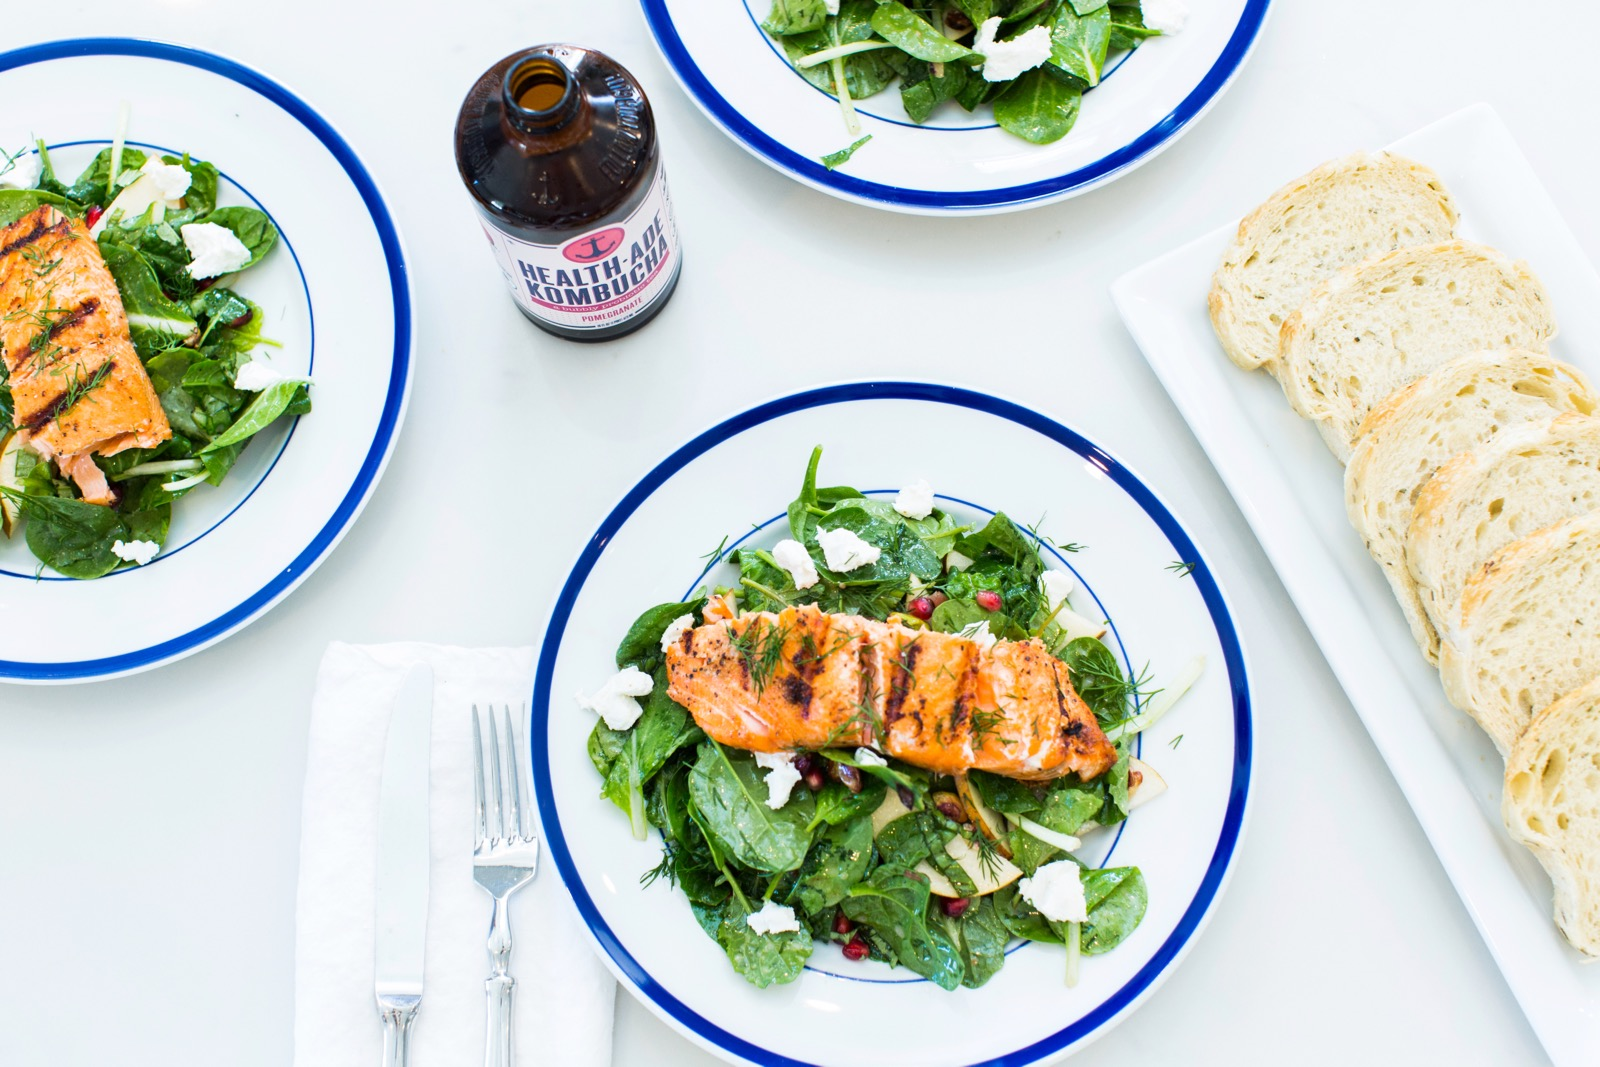 Seared Salmon Salad with Toasted Rosemary Bread